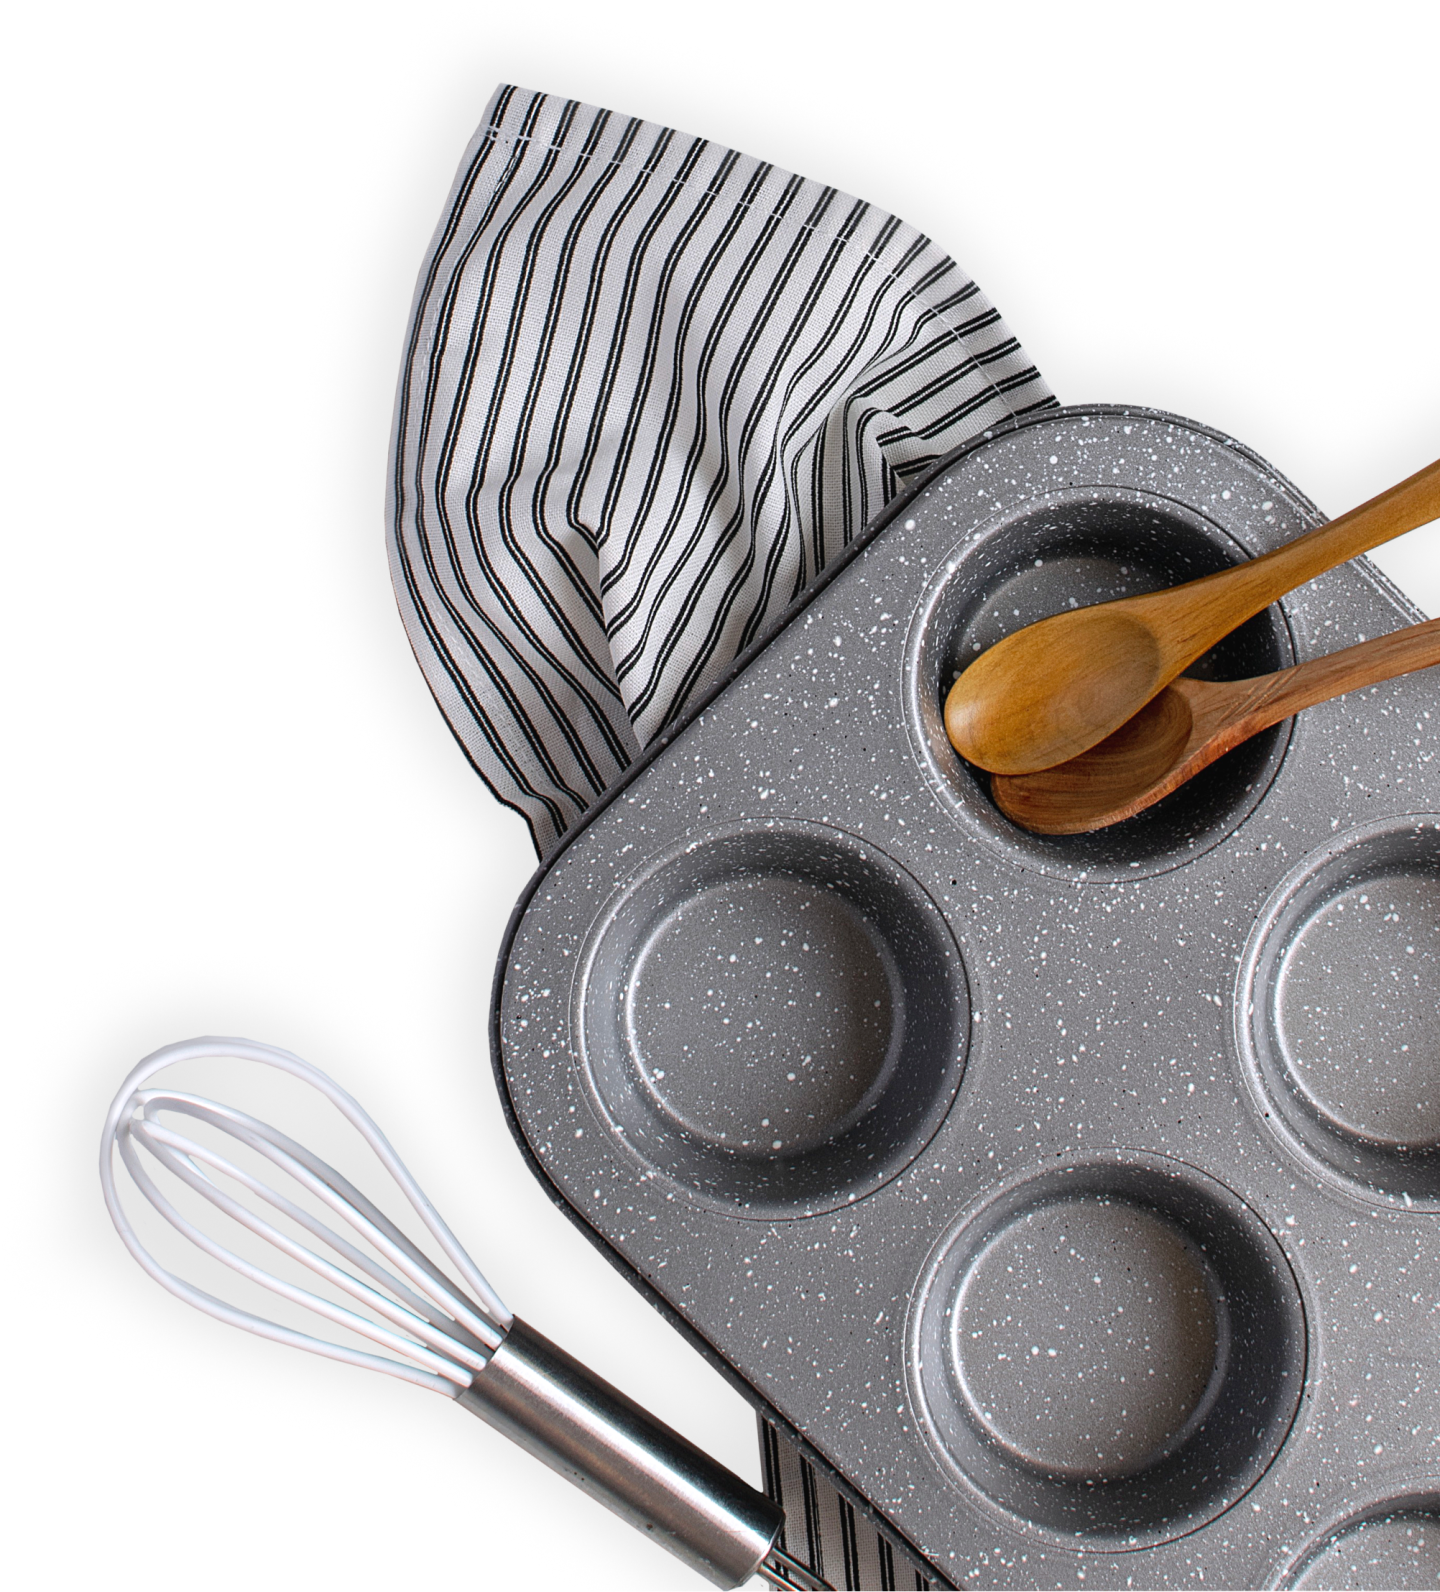 Baking pan, whisk, and two wooden spoons laying on top of a dish towel.